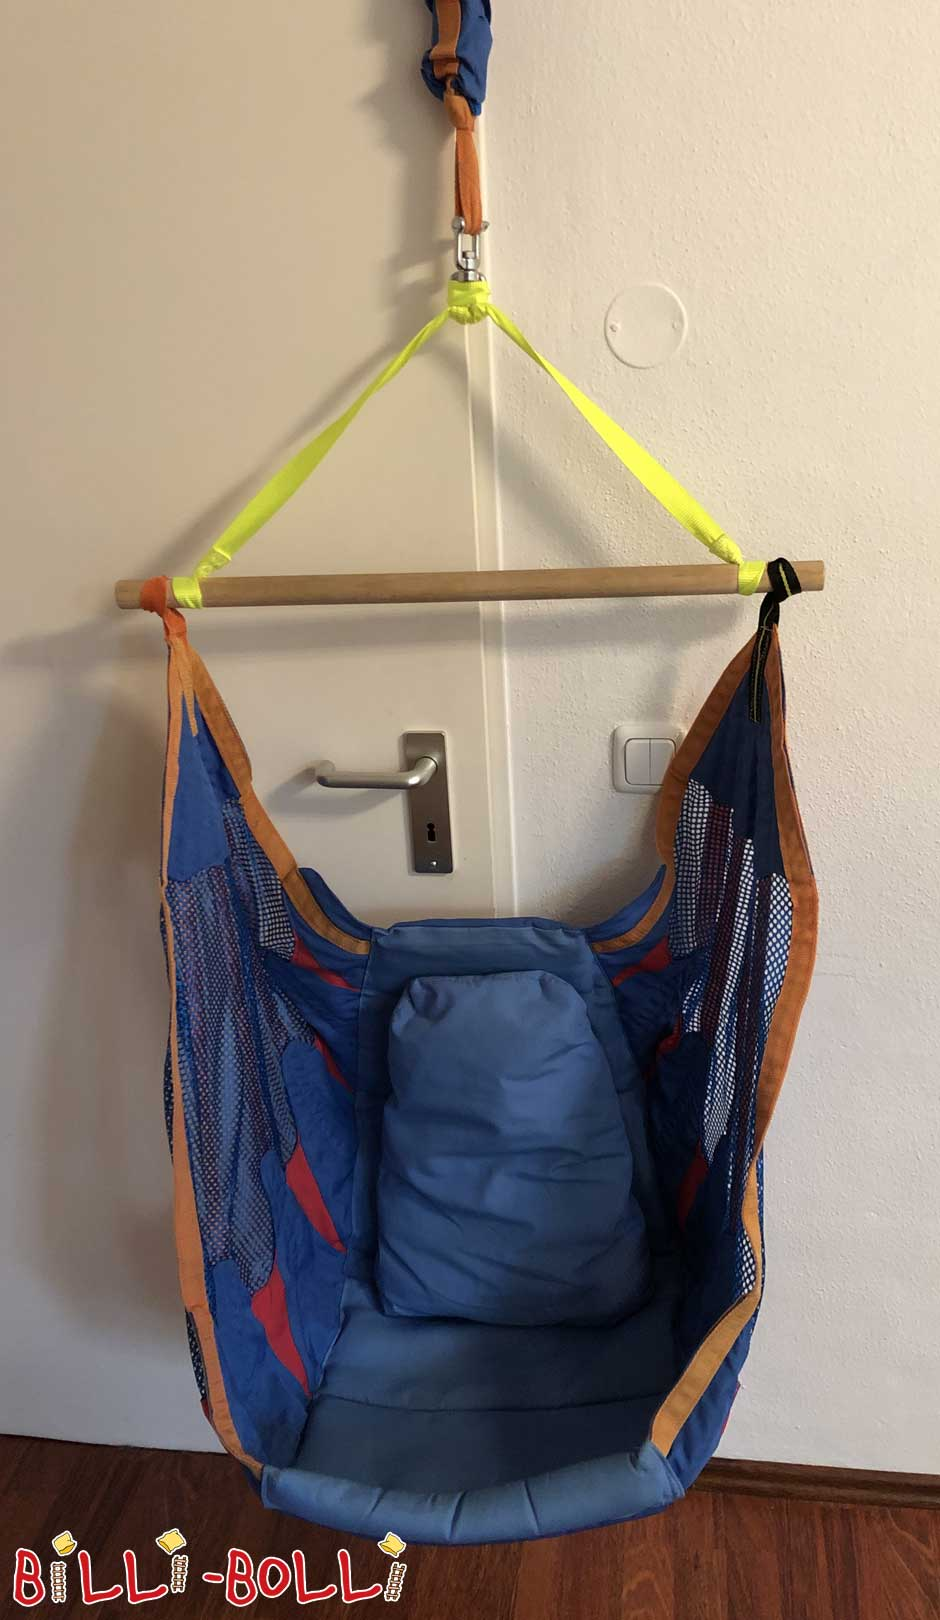 Swing seat, climbing rope & rocking plate (second hand kids' furniture)